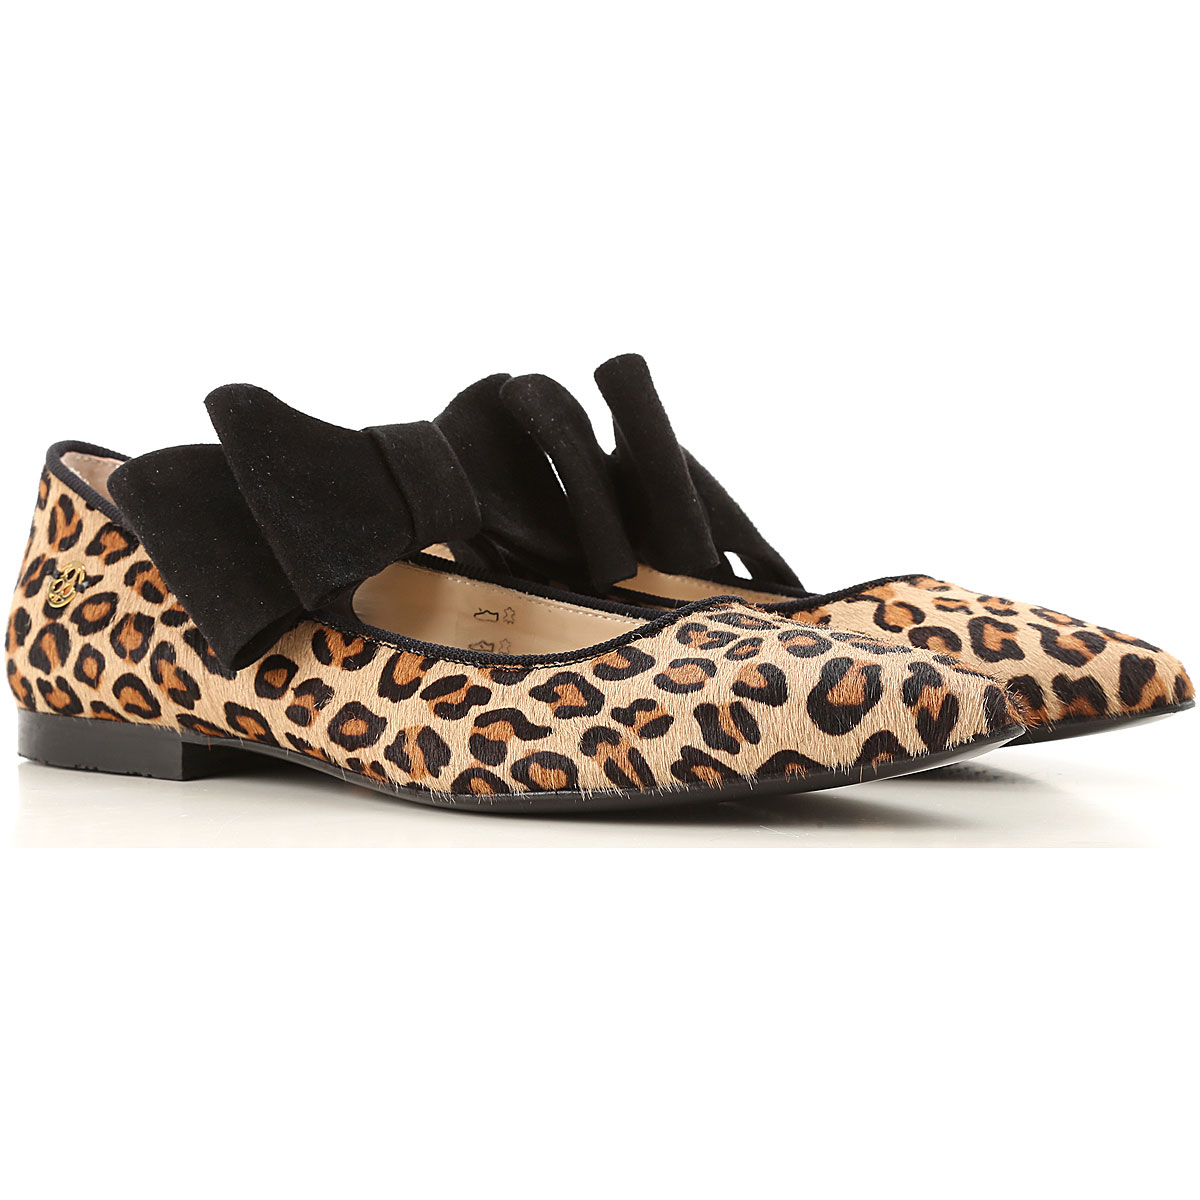 Florens Kids Shoes for Girls On Sale, Leopard, Leather, 2019, 30 31 32 33 34 35 36 37 38